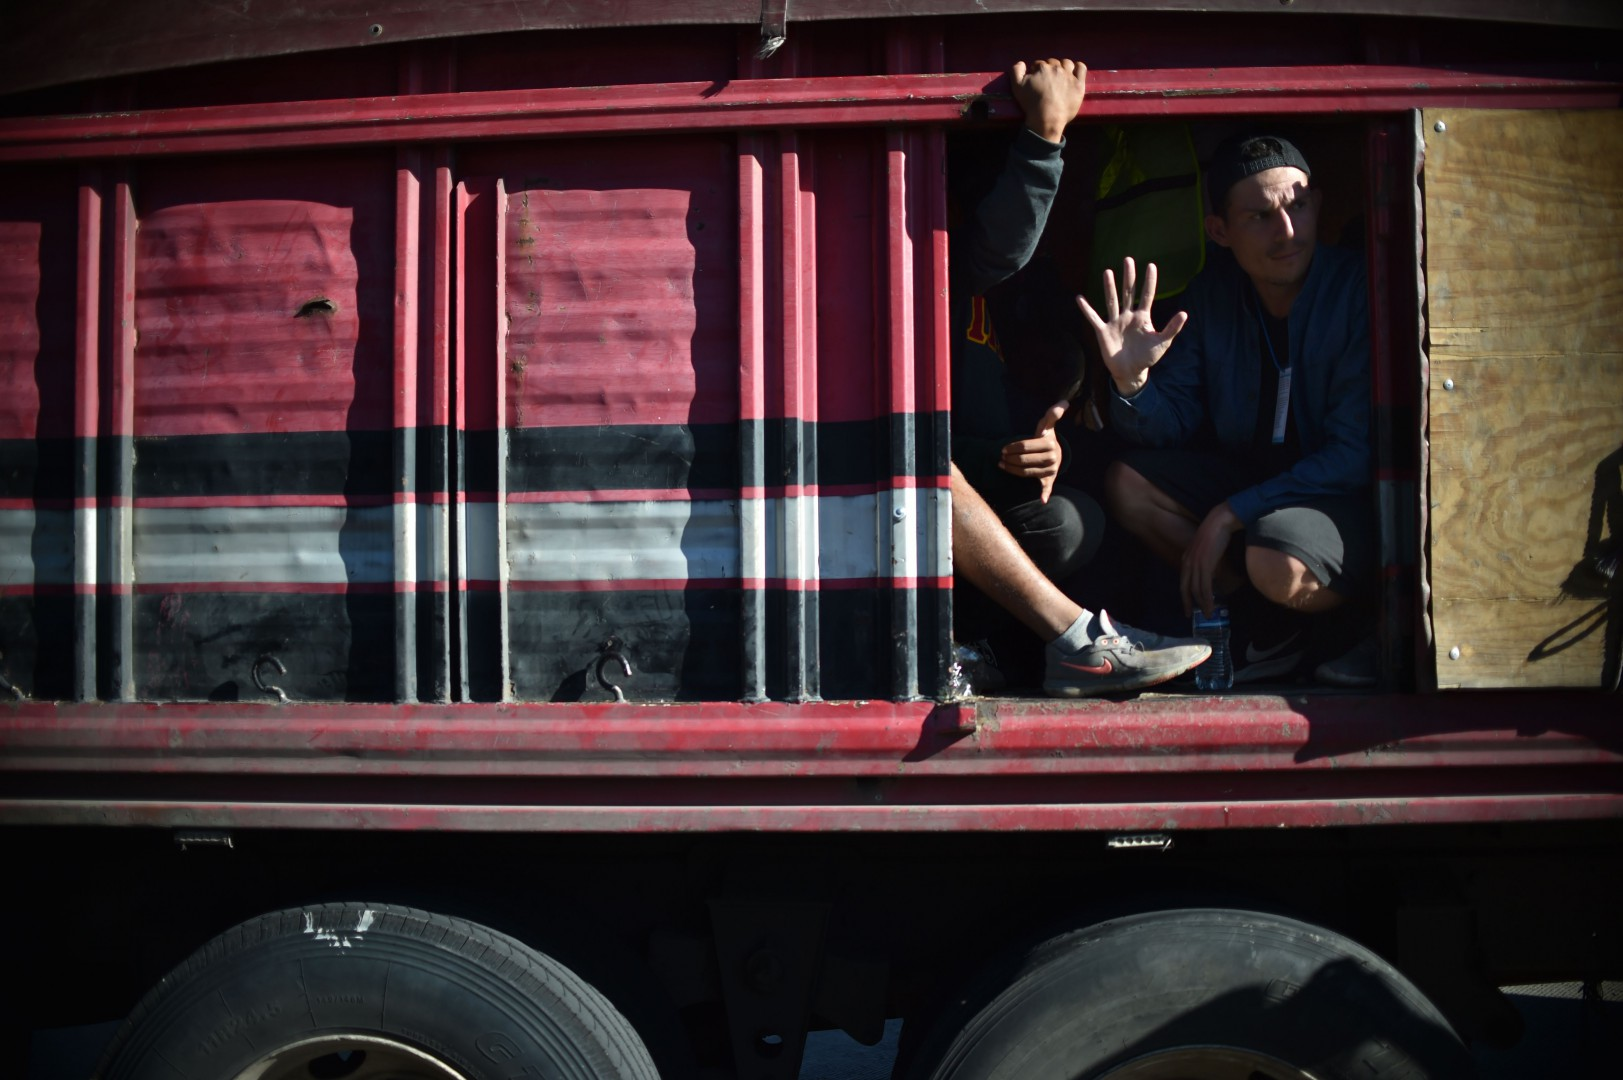 Migrants from poor Central American countries -mostly Hondurans- moving towards the United States in hopes of a better life or to escape violence take a ride on the back of a truck along the Mexico City-Puebla highway in San Marcos, Mexico, on November 5, 2018. - US President Donald Trump has ordered regular army troops to the US-Mexican border as a caravan of a few thousand impoverished migrants slowly marches toward the boundary. (Photo by Rodrigo ARANGUA / AFP)